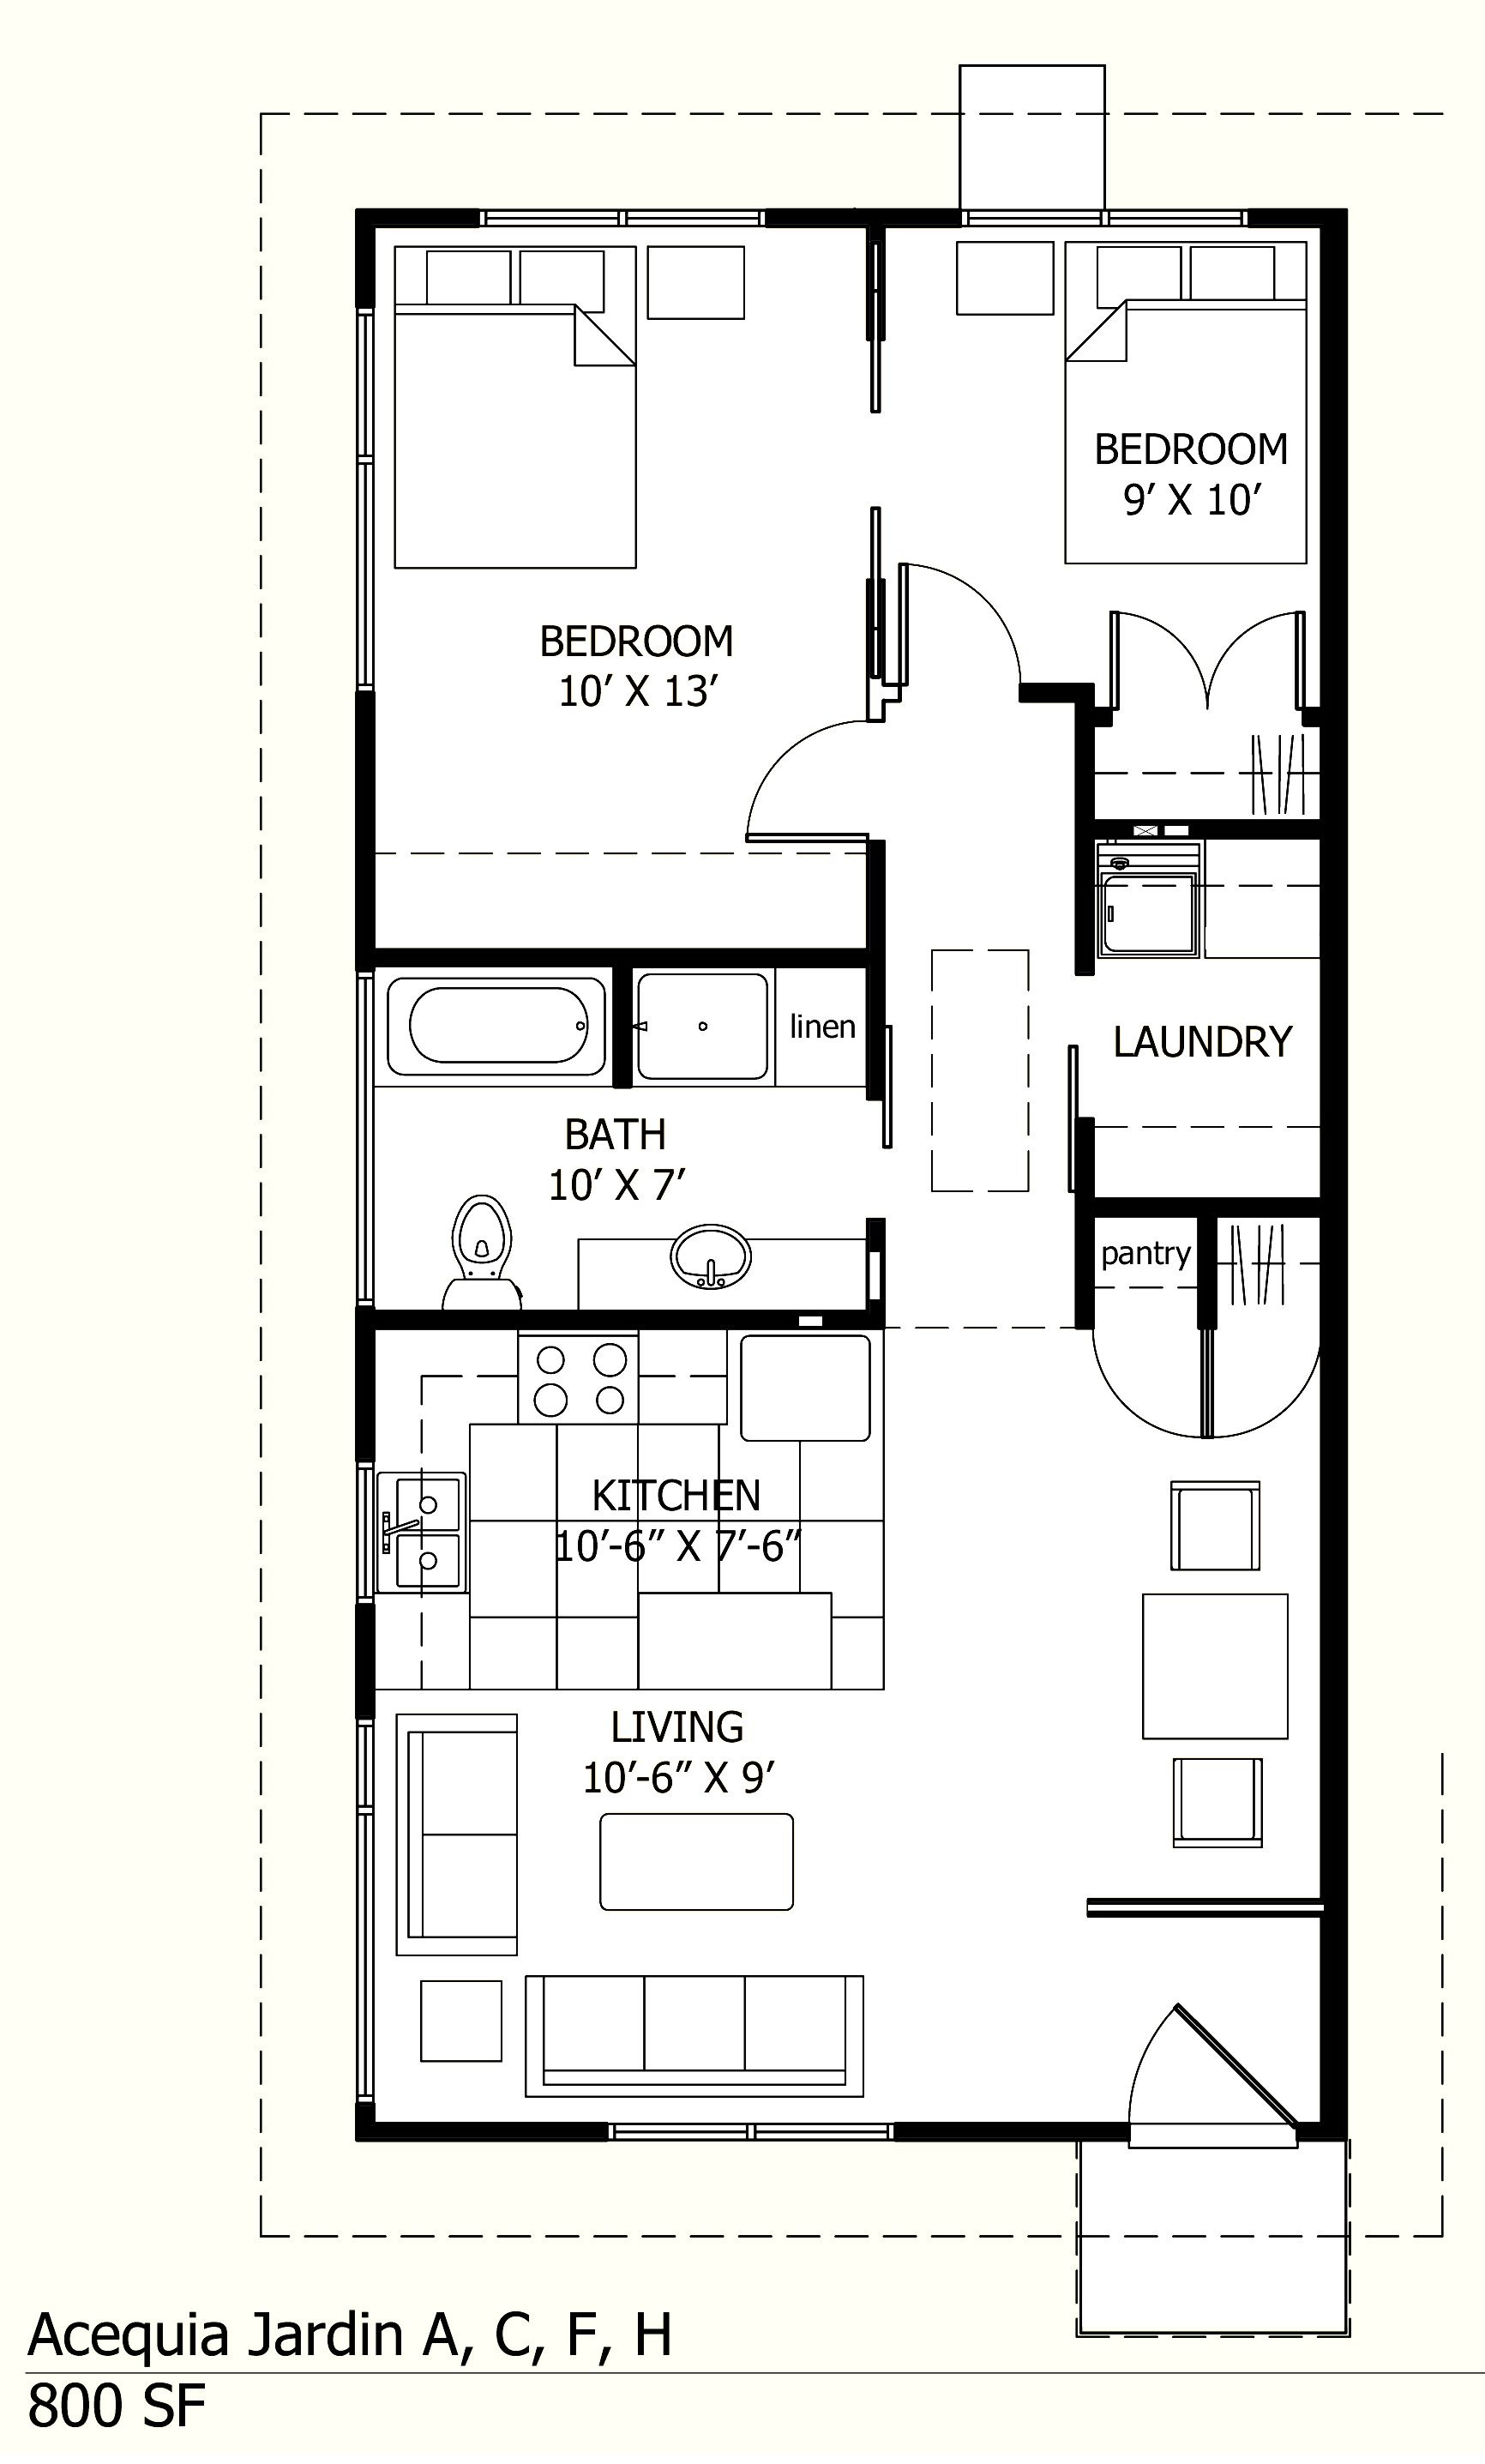 House Plans with Prices New 800 Sq Ft